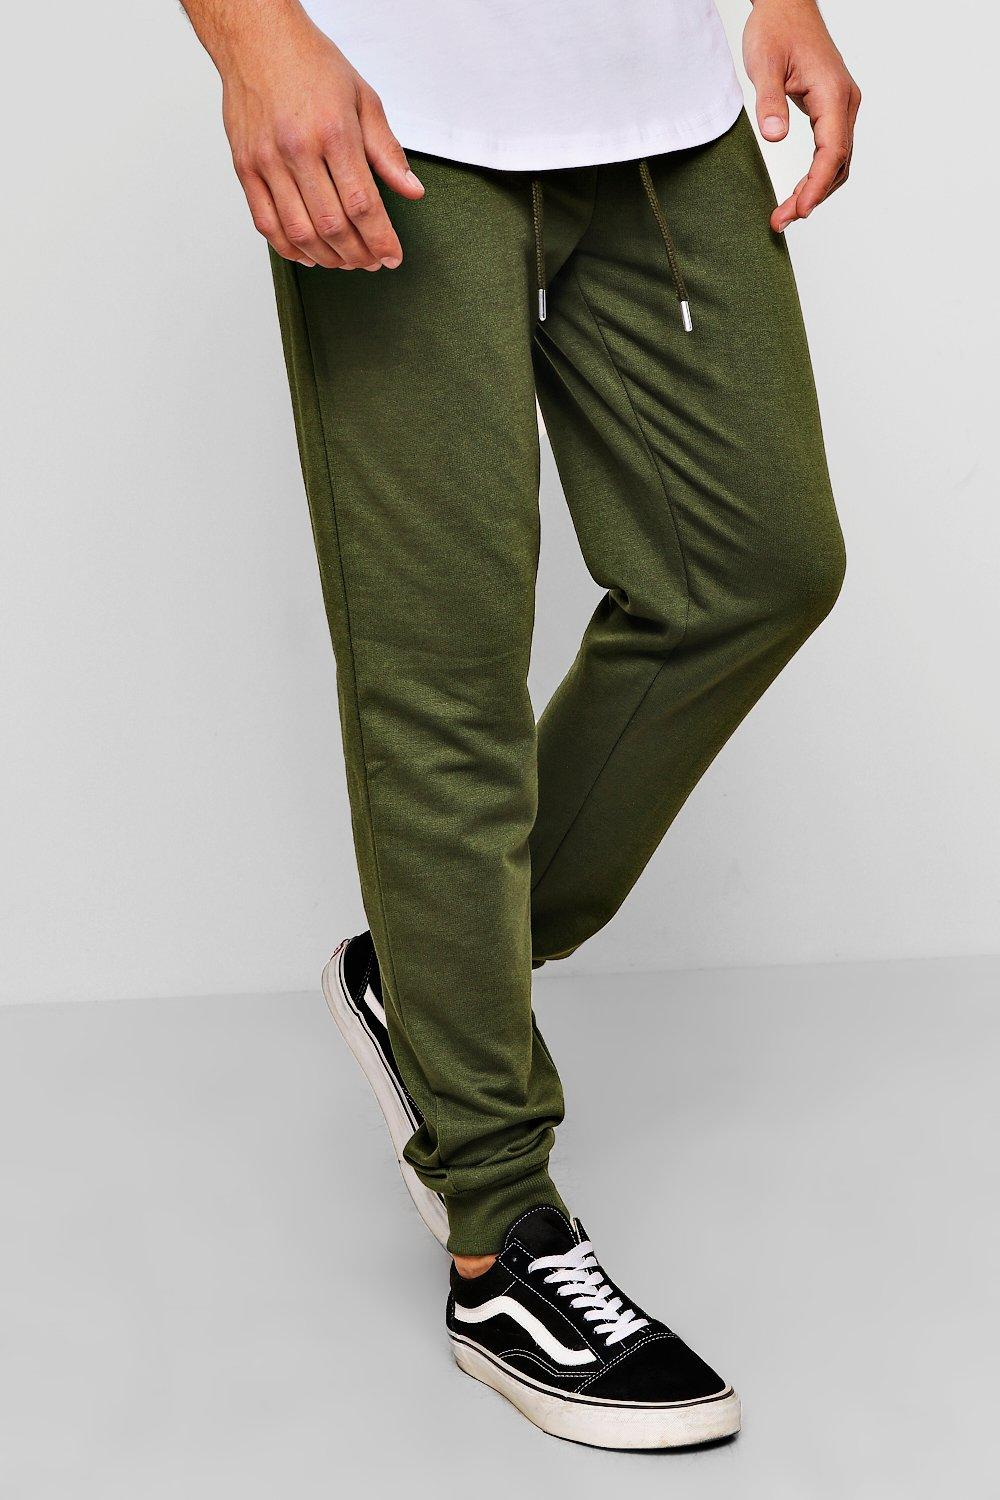 MAN Signature Fit Slim olive Joggers rvZZwpqY